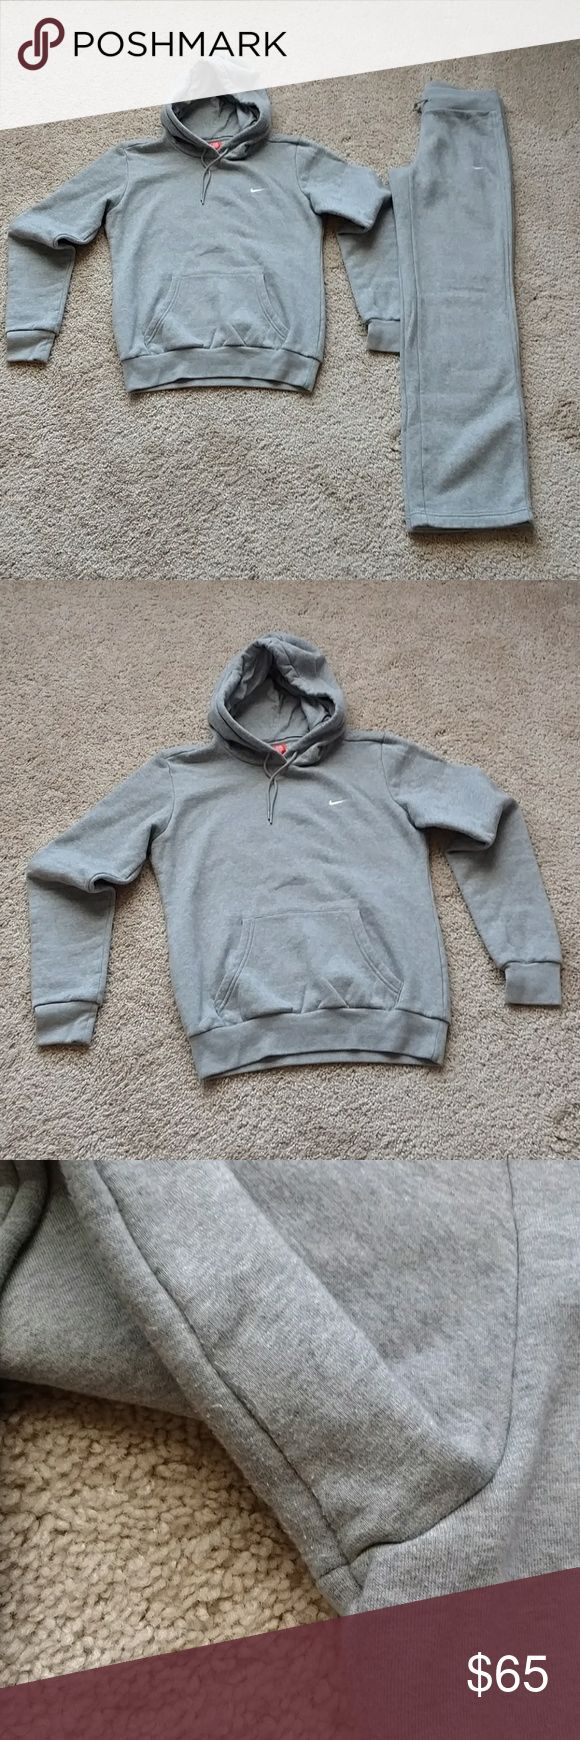 Authentic NIKE sweat suit Pull over hoodie and pants.  Hoodie is size small with minor piling under arms but in excellent condition. No stains. Pants are size xsmall with minor piling in crotch area. No stains.  Light gray sweats and pull over with drawstring hoodie to tighten. Check color: white Nike Other